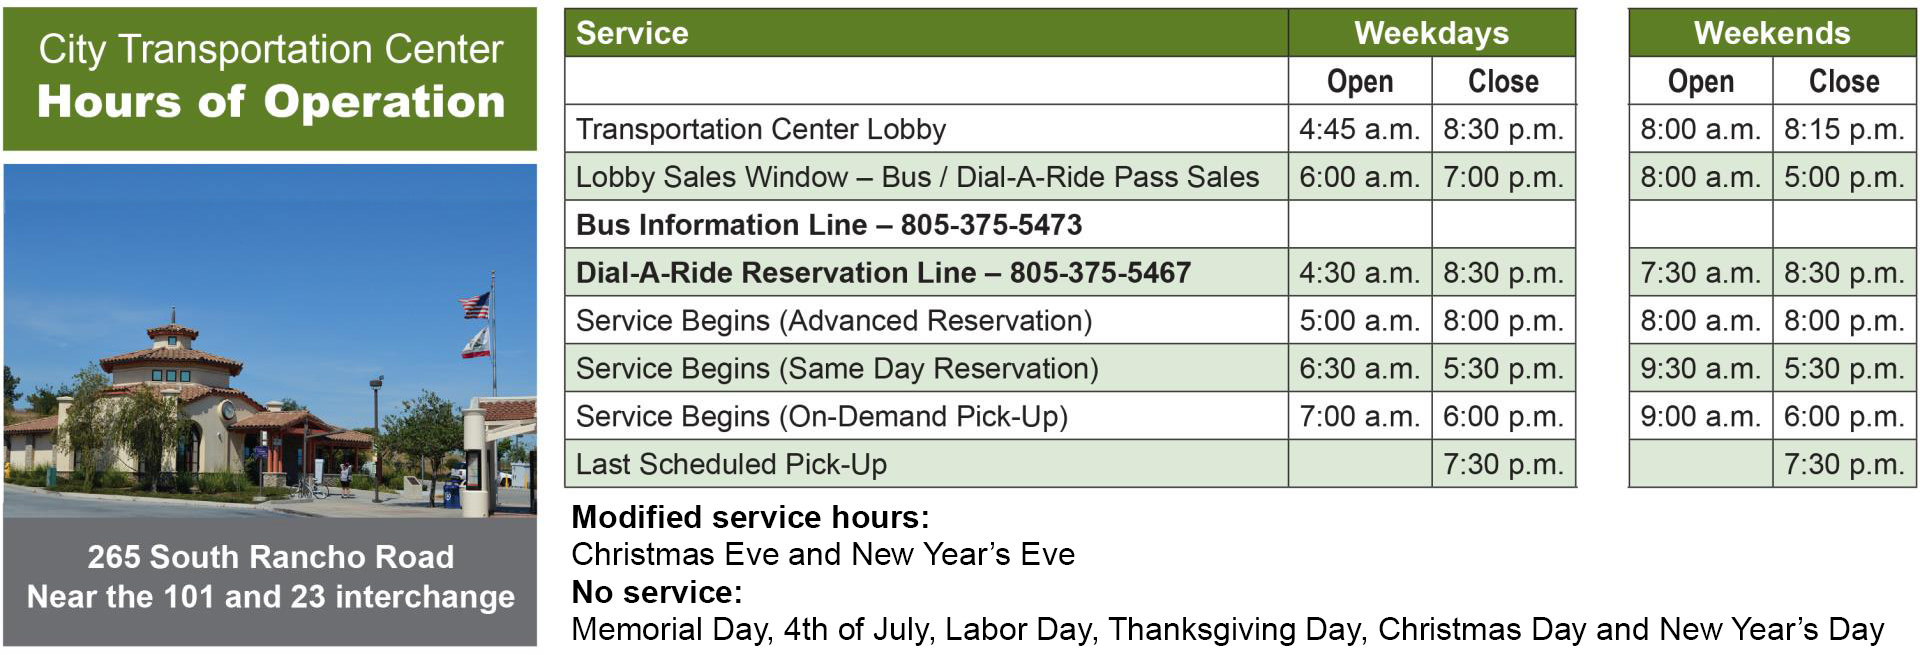 Thousand Oaks Transit General Hours of Operation